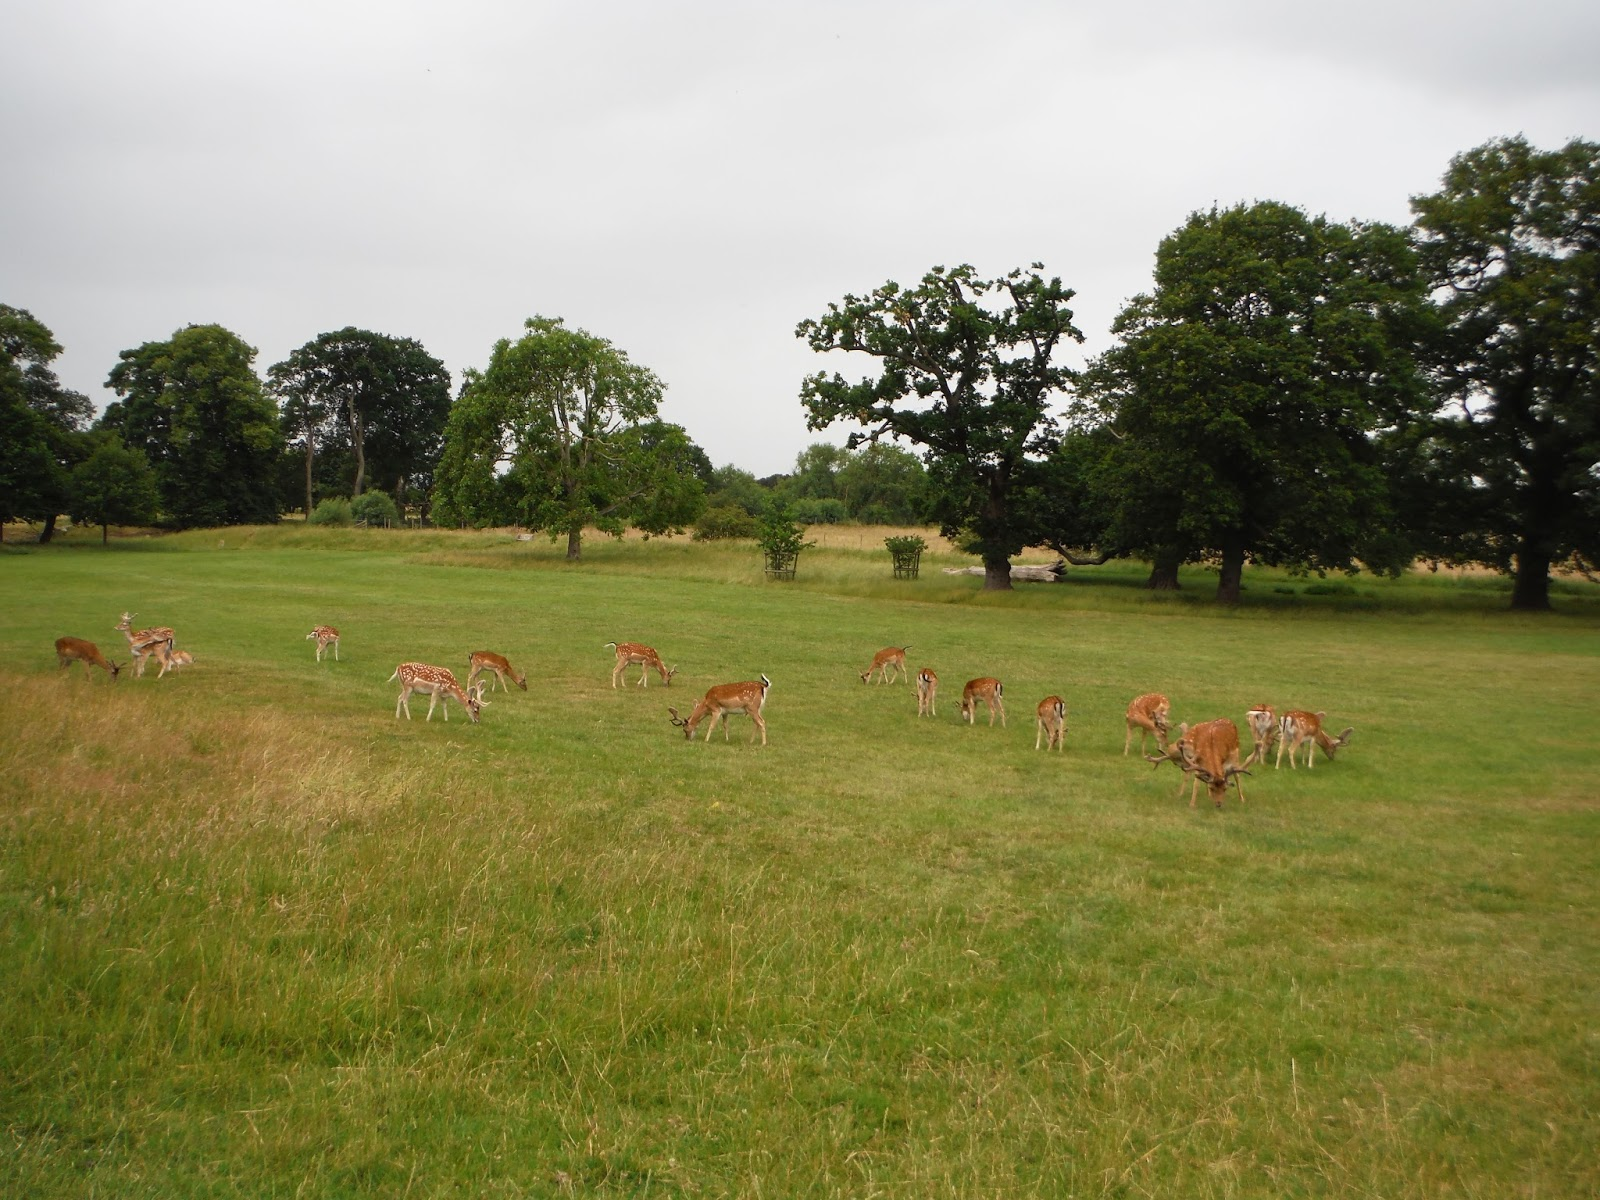 a pack of deer in the grounds of Charlecote Park